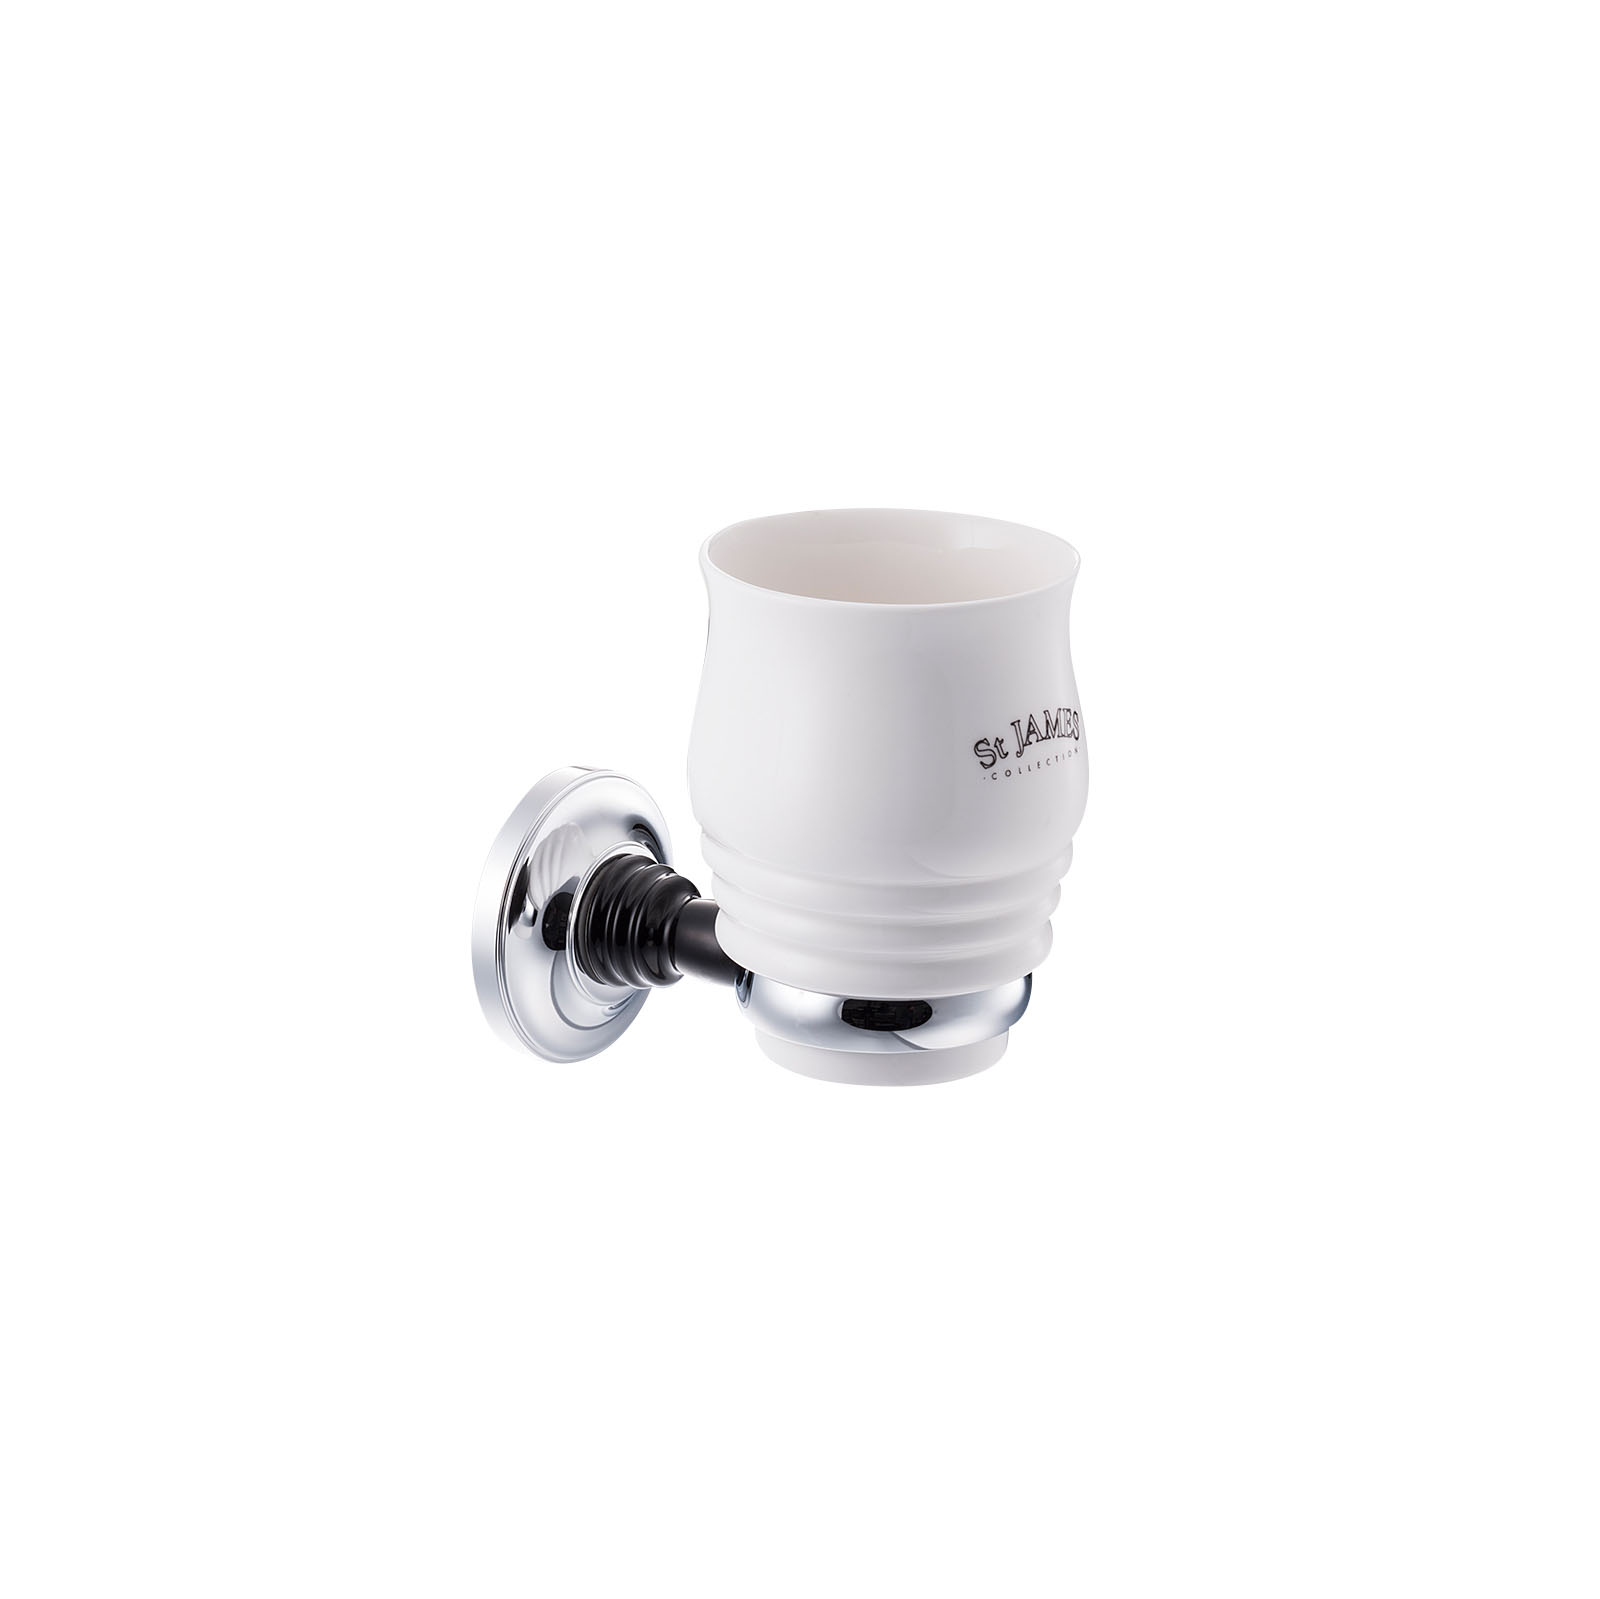 Picture of Porcelain Tumbler & Holder